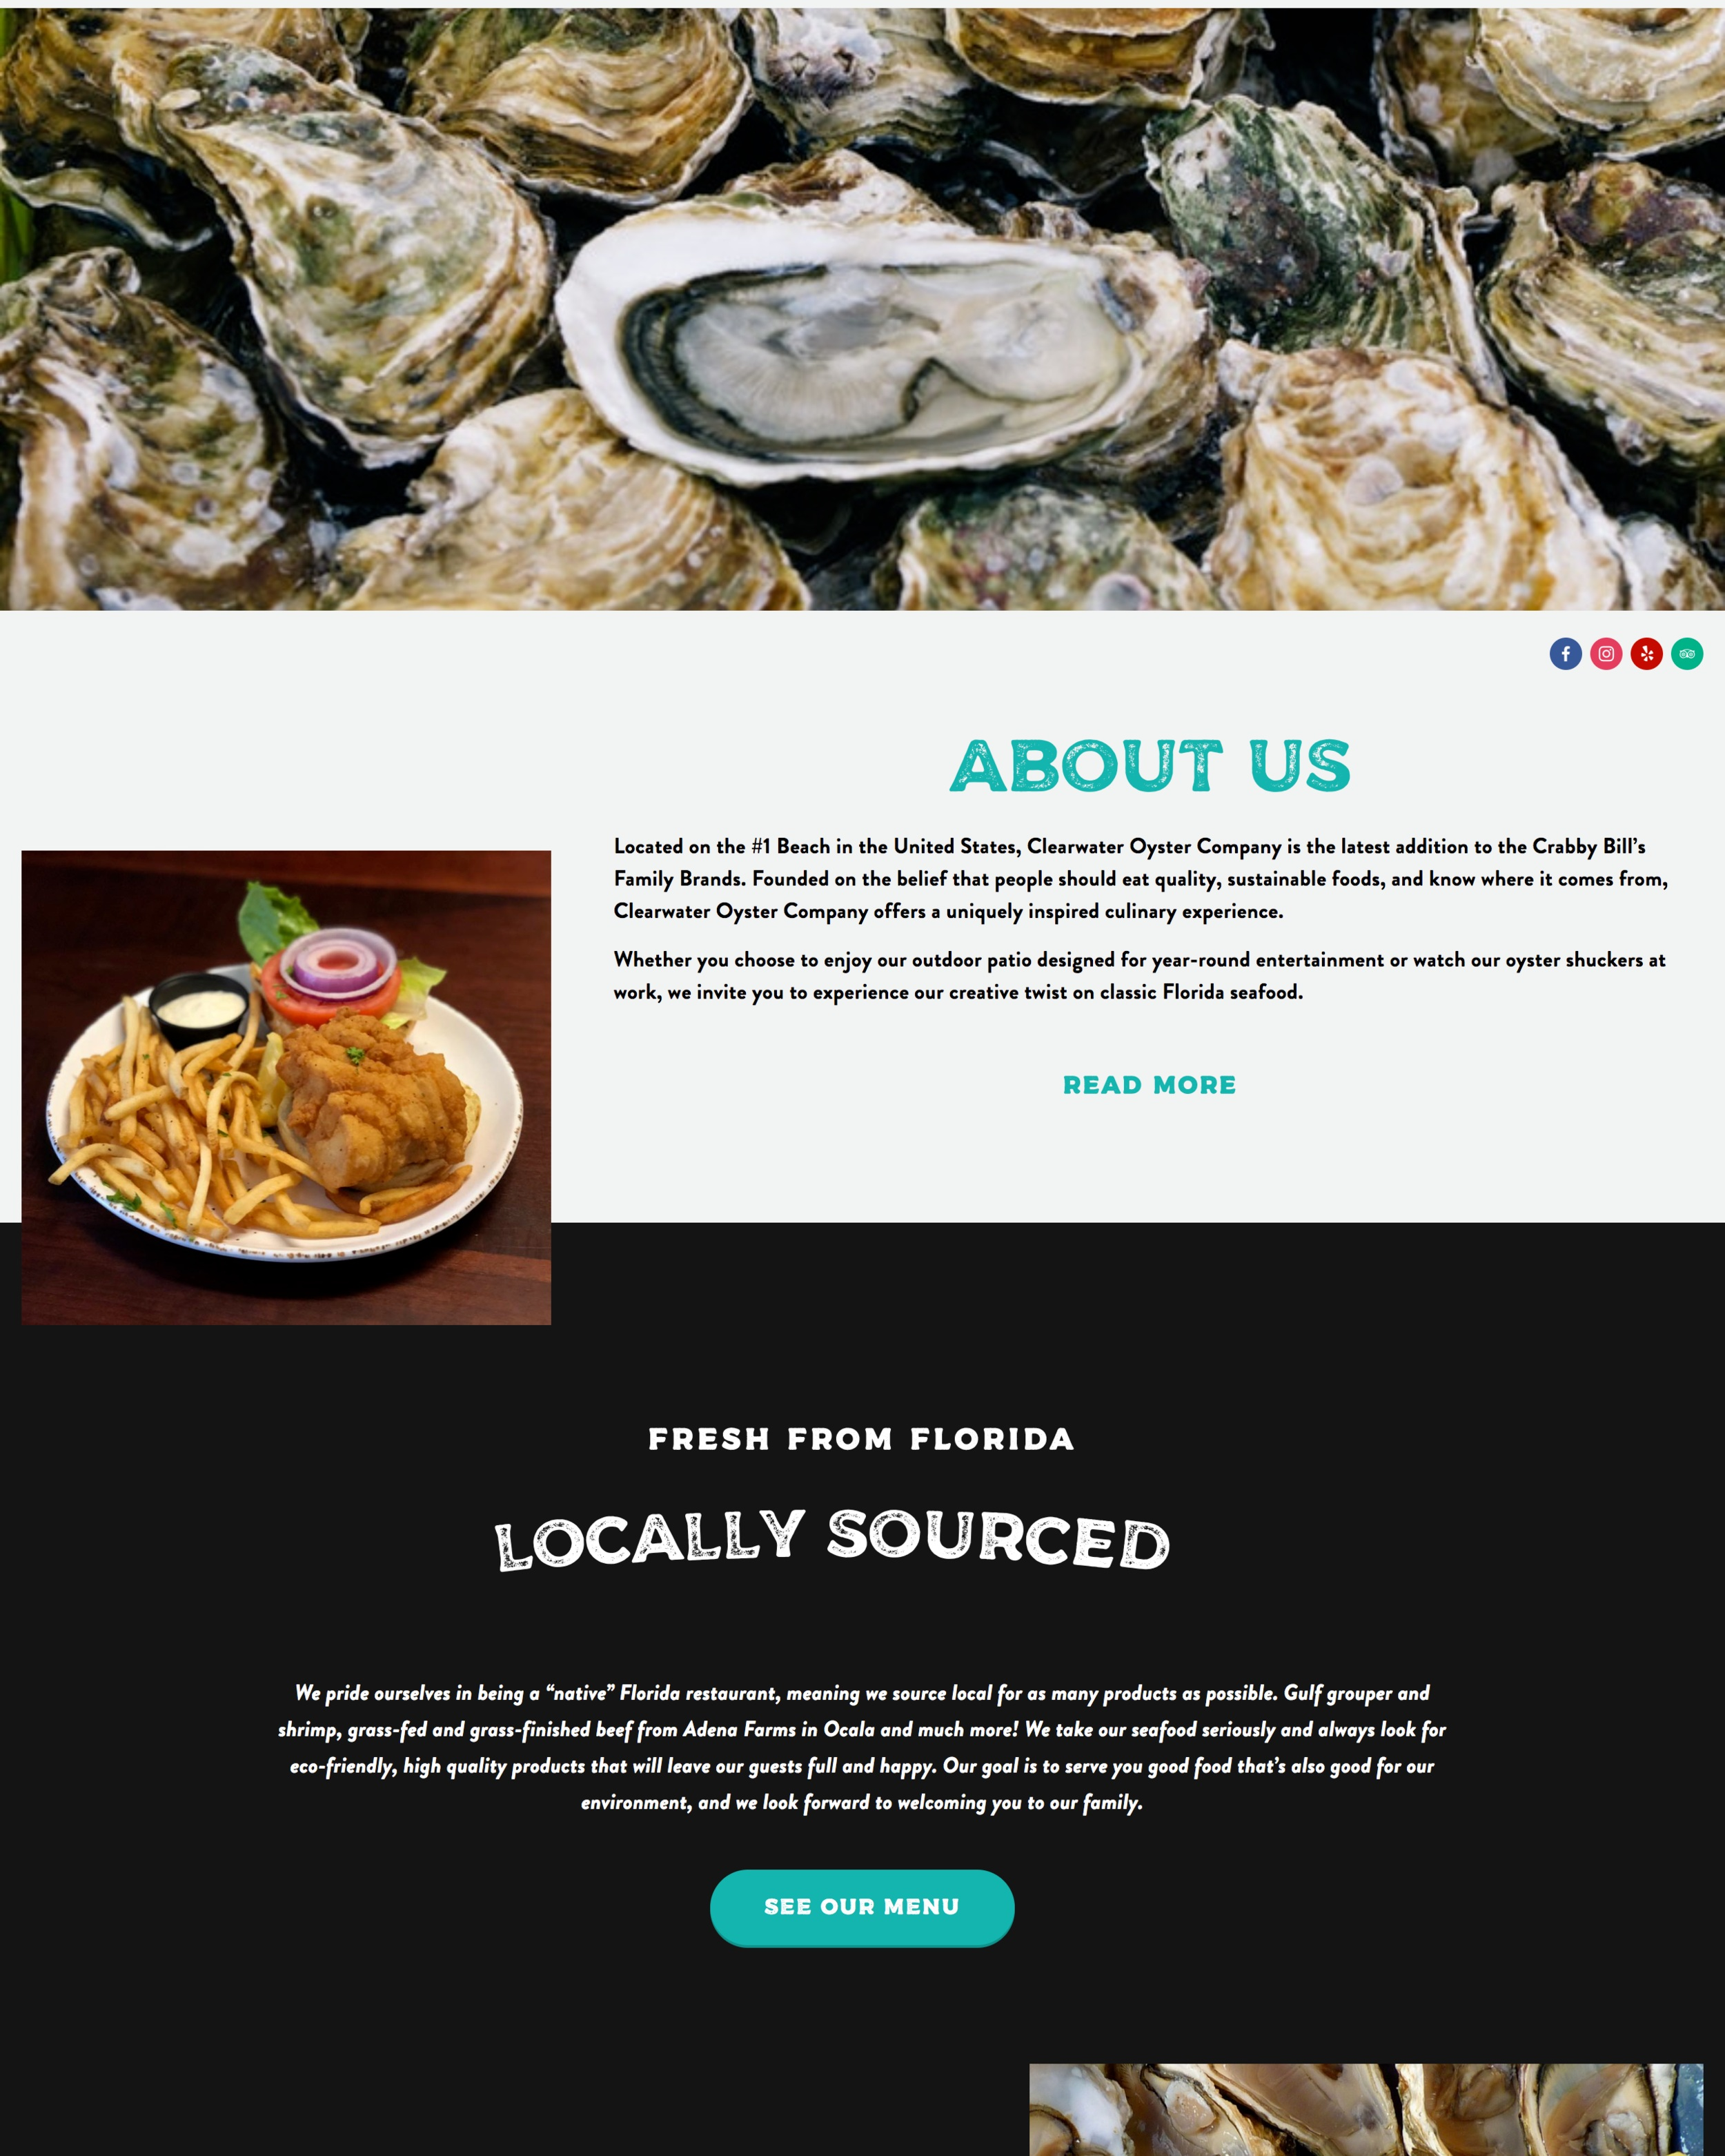 screencapture-clearwateroystercompany-2019-03-14-12_49_50.png